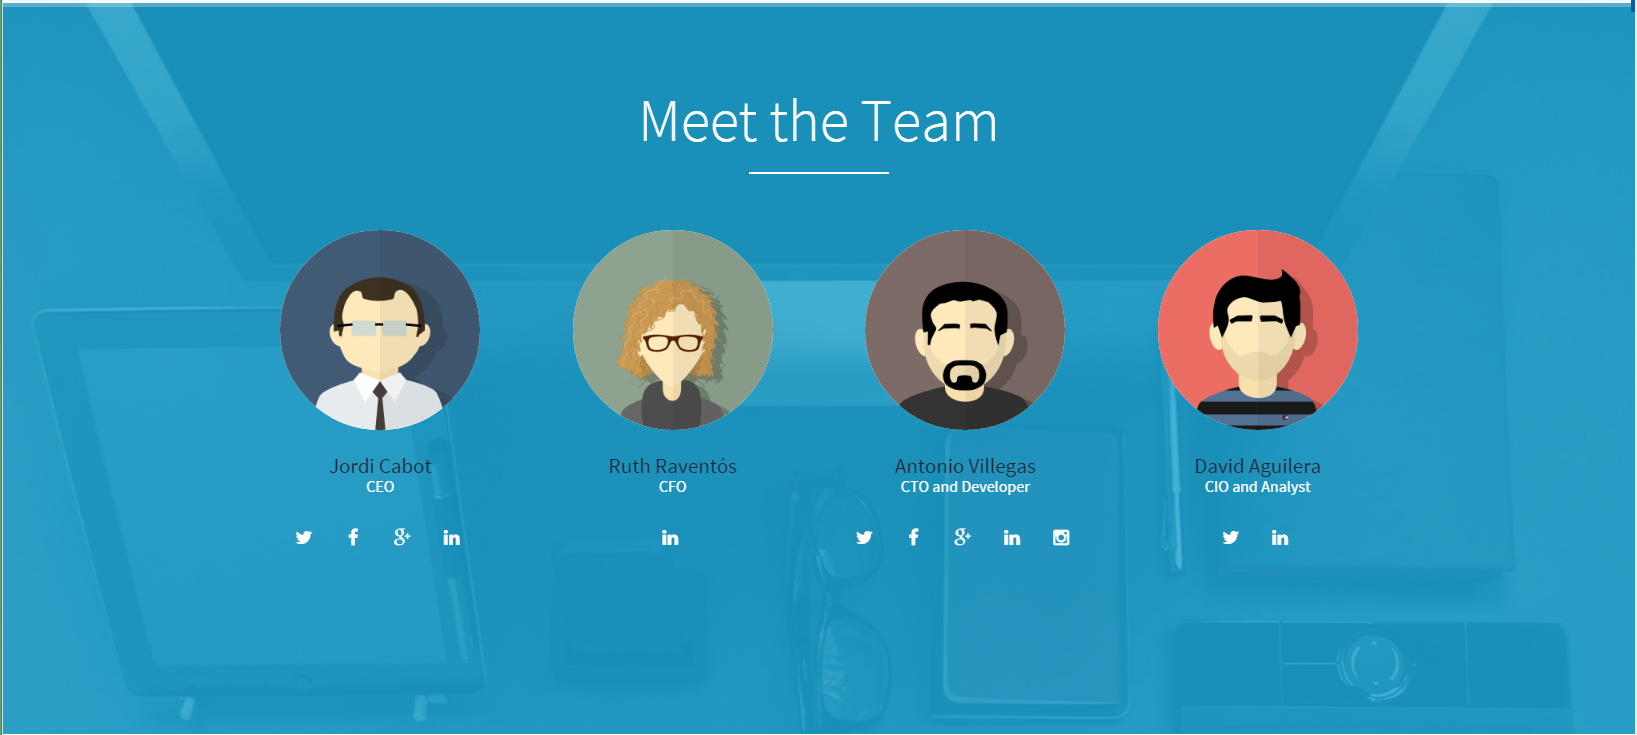 Screenthot of Original Version of Meet The Team in our Landing Page